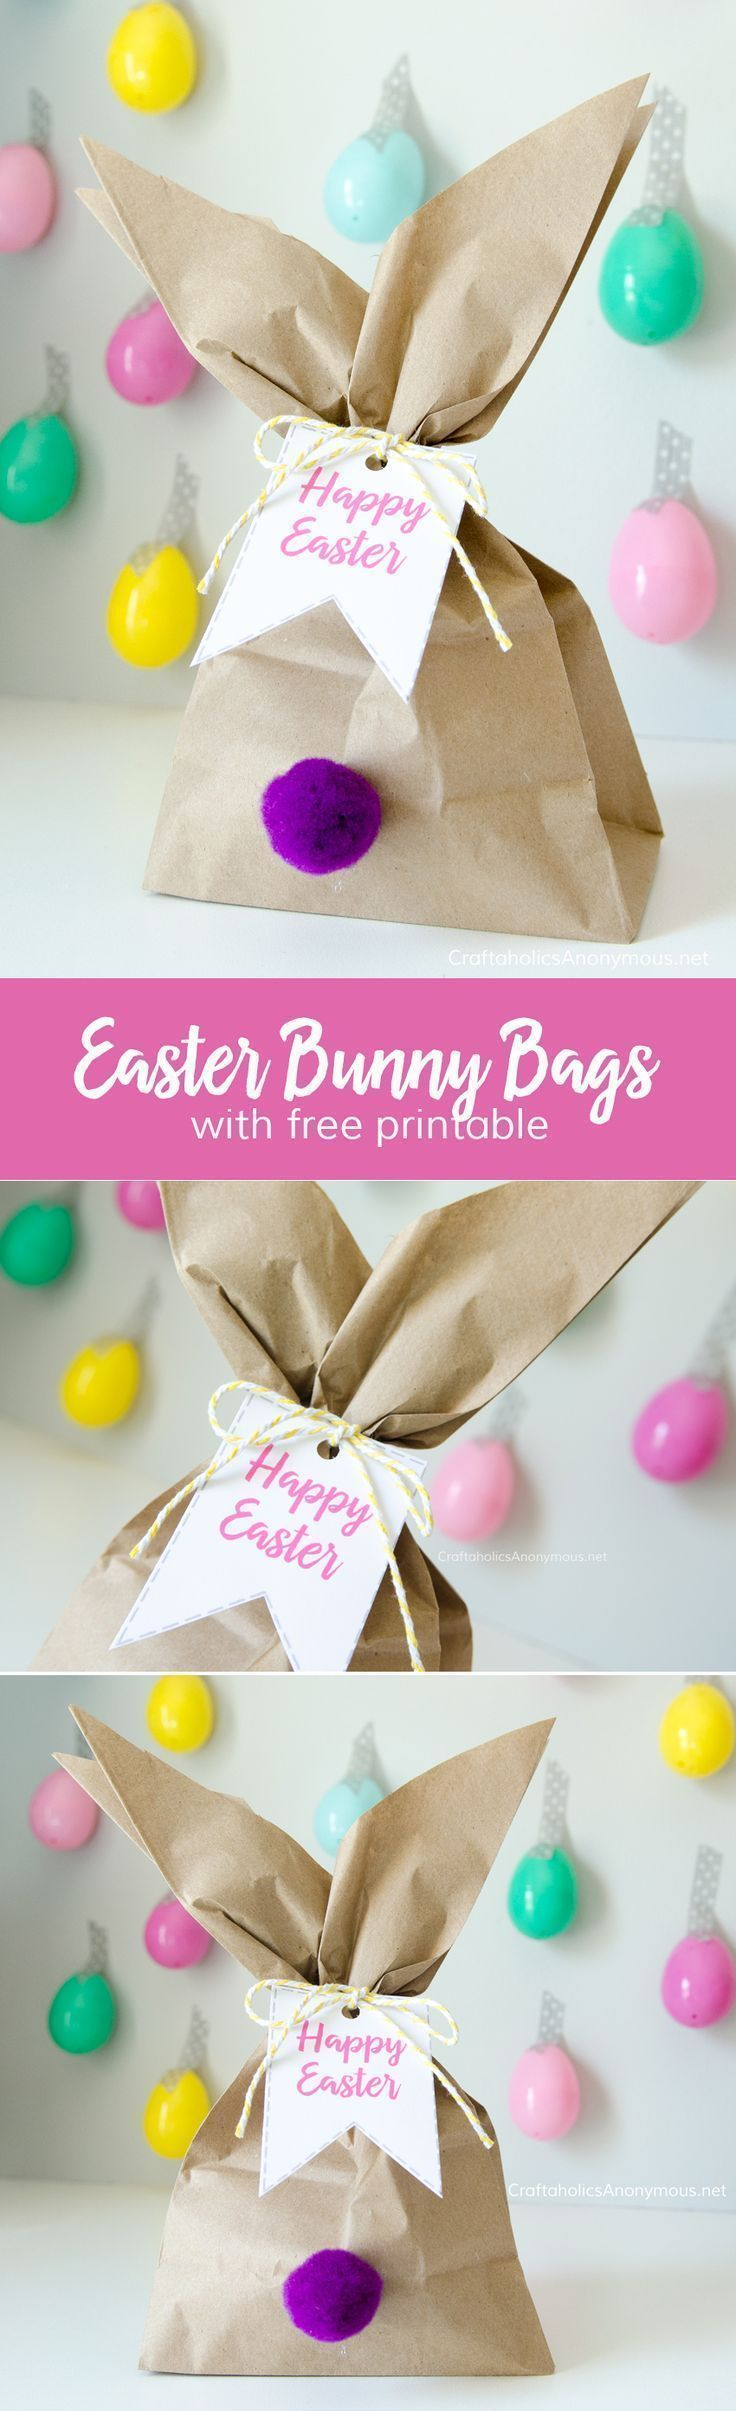 540 best easter crafts images on pinterest easter easter decor easter bunny gift bags with free printable tags negle Gallery